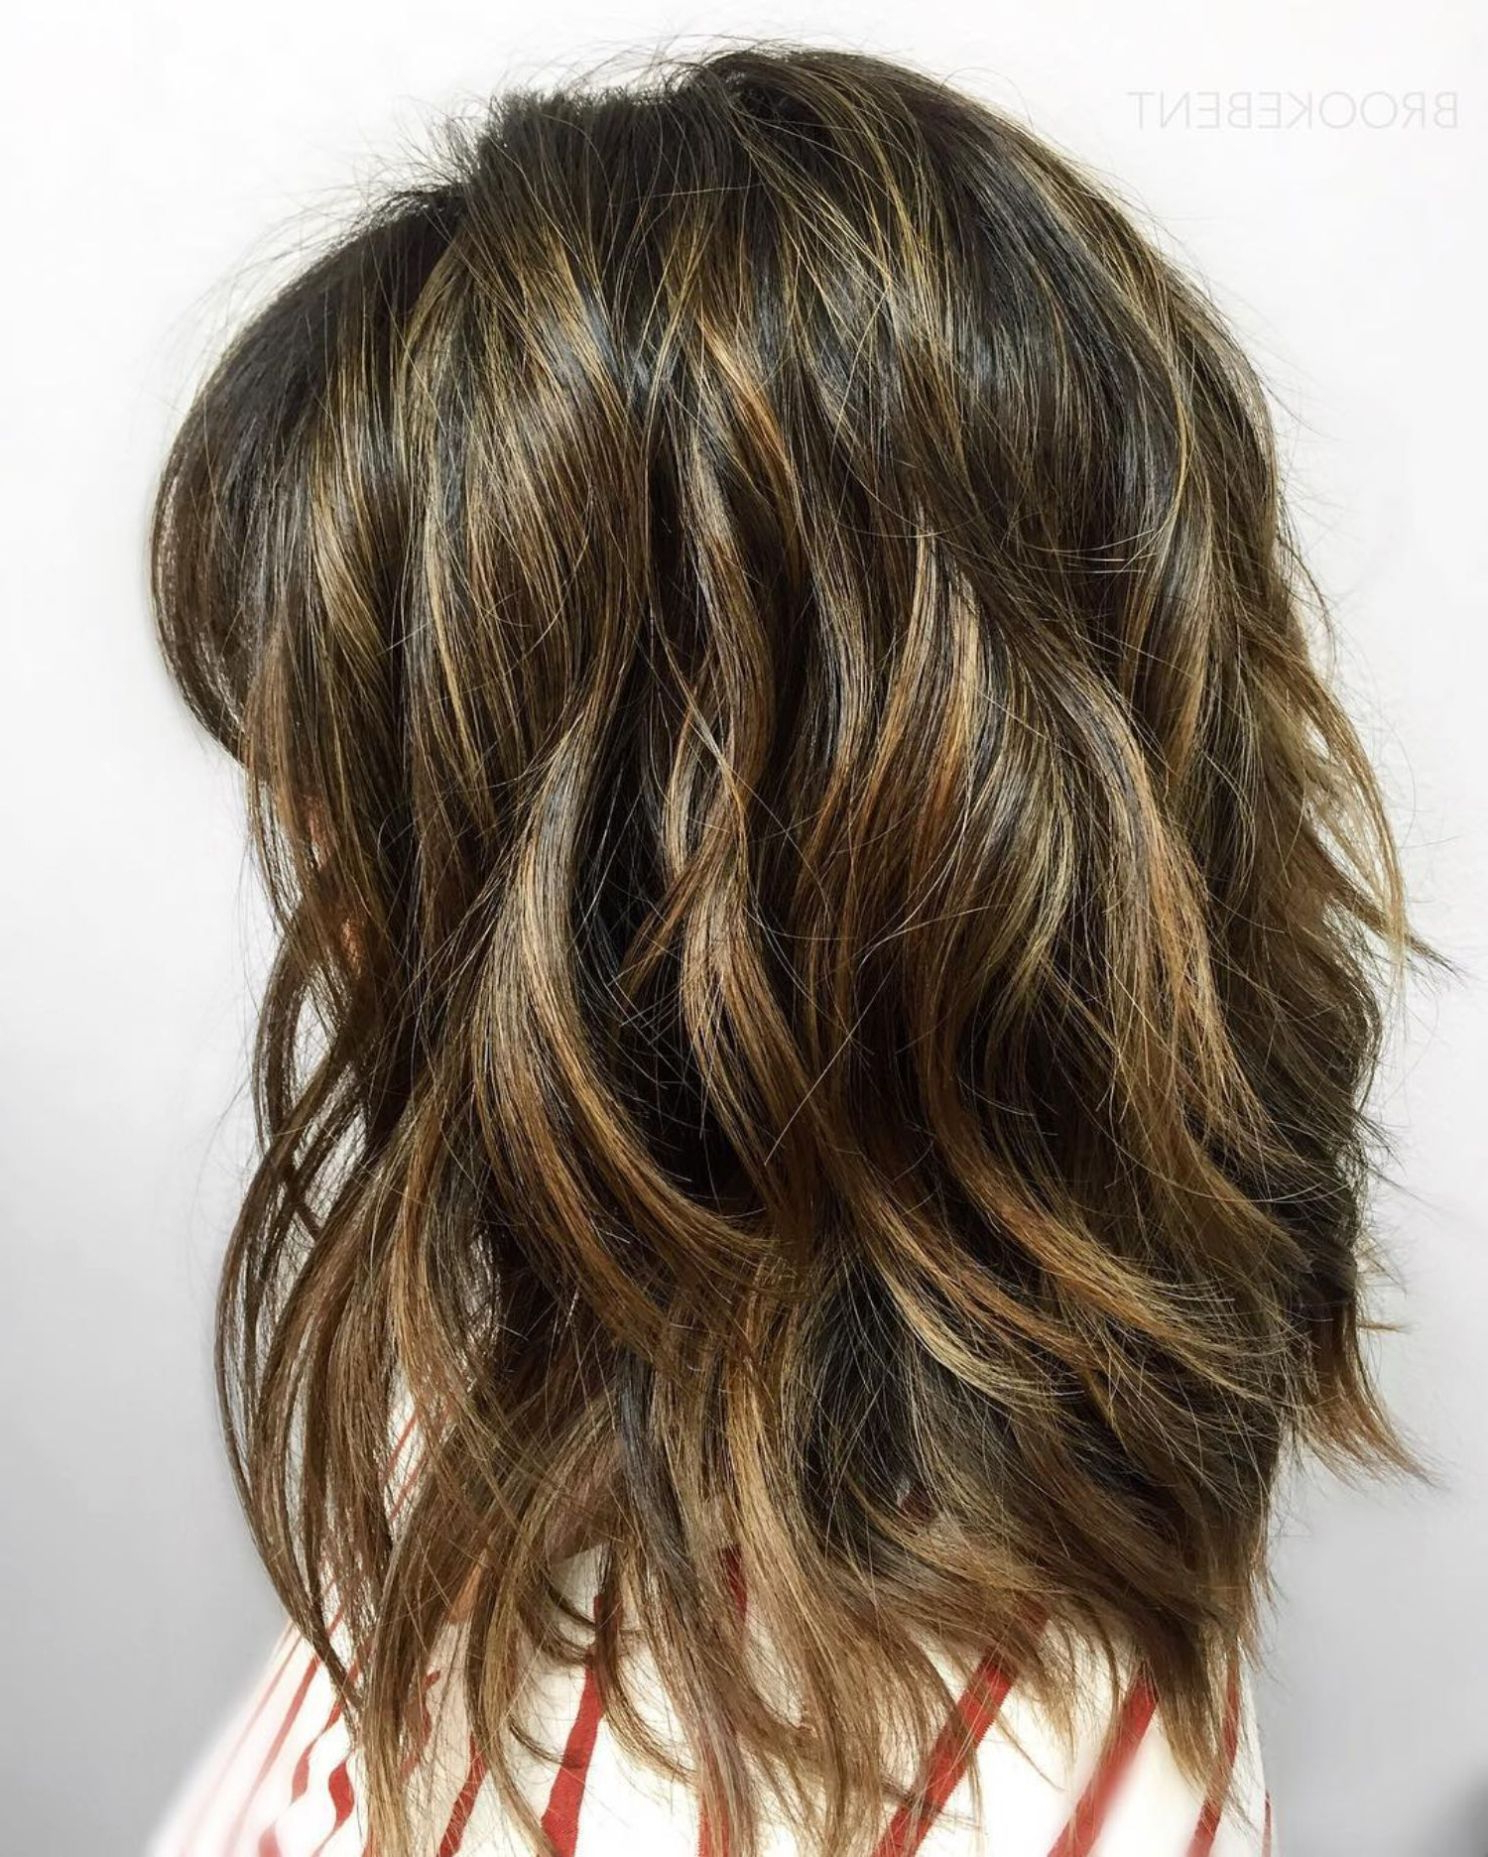 80 Sensational Medium Length Haircuts For Thick Hair (View 10 of 20)